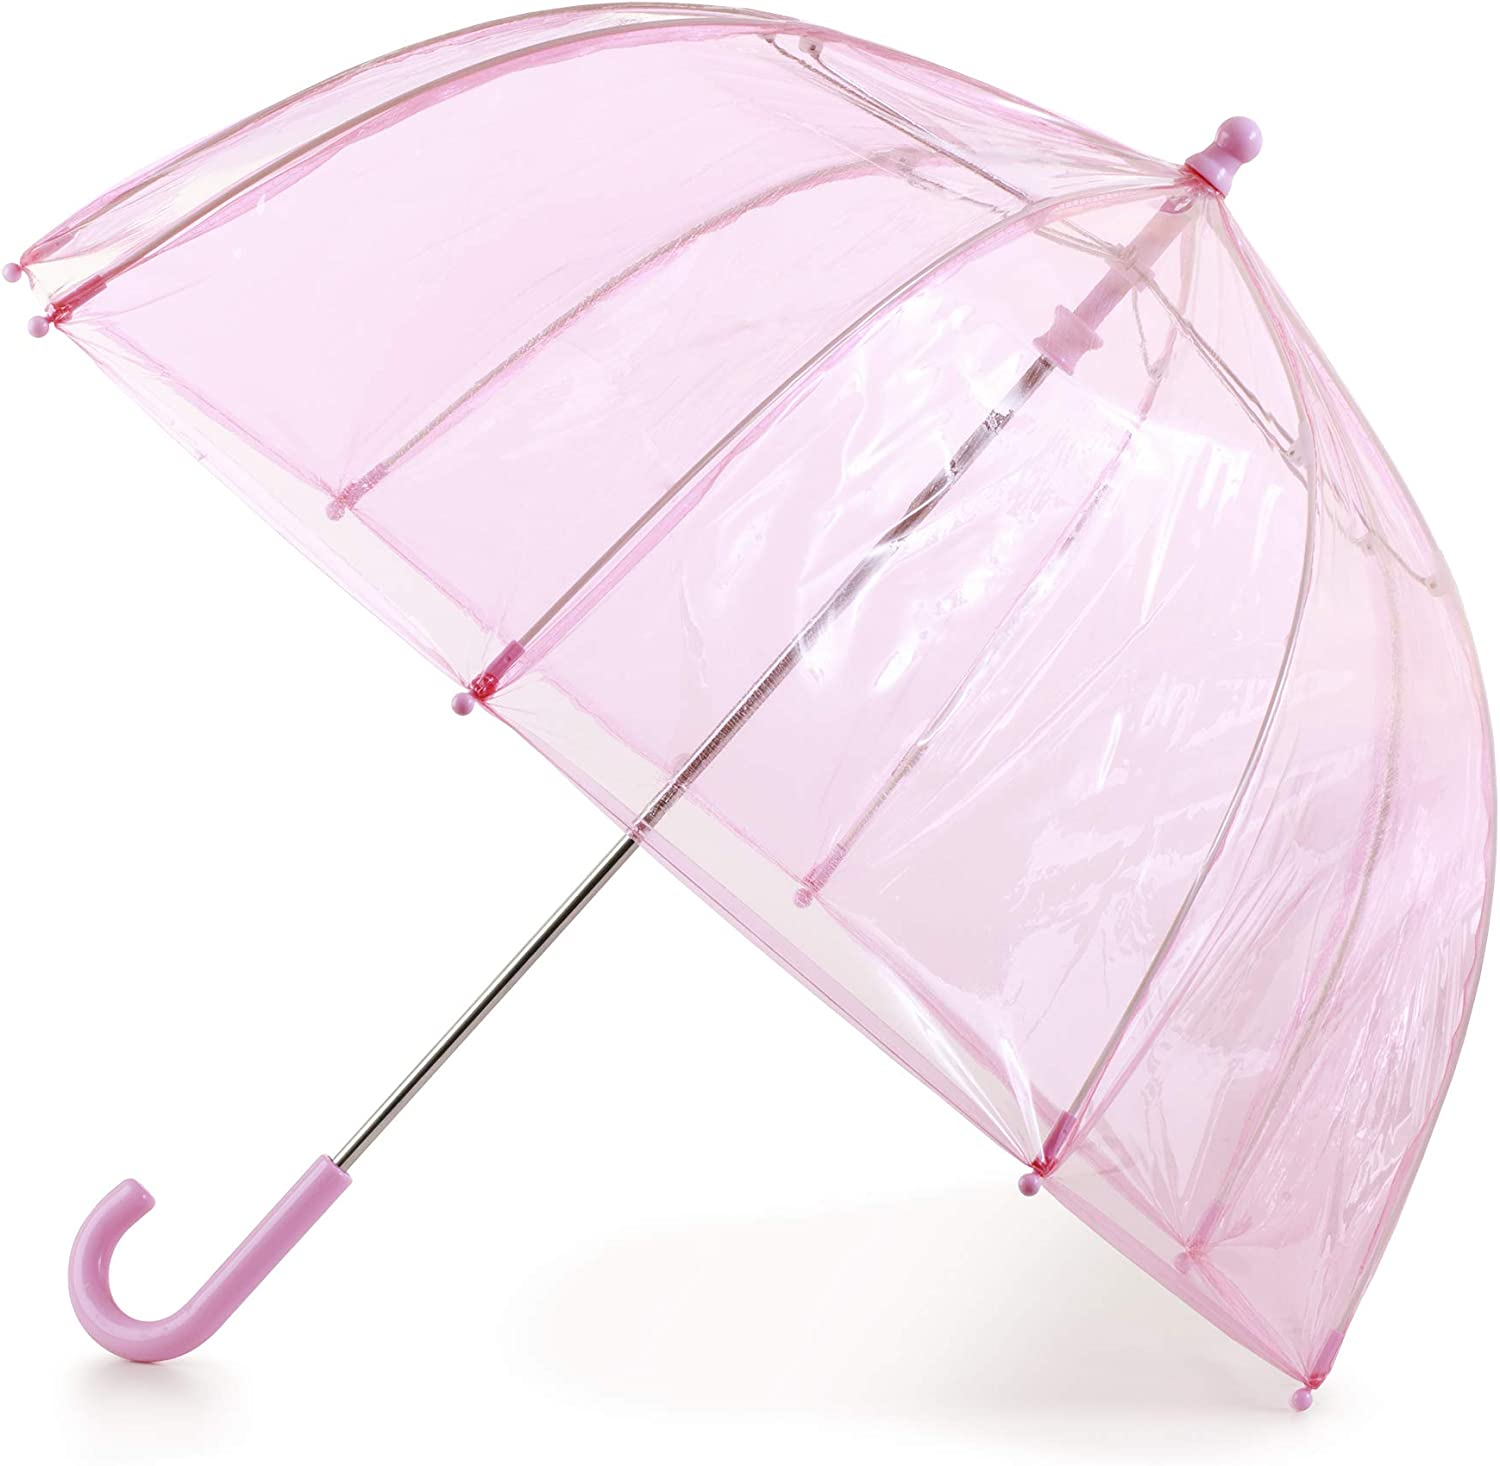 totes Girls Clear Bubble Umbrella, Pink, 38